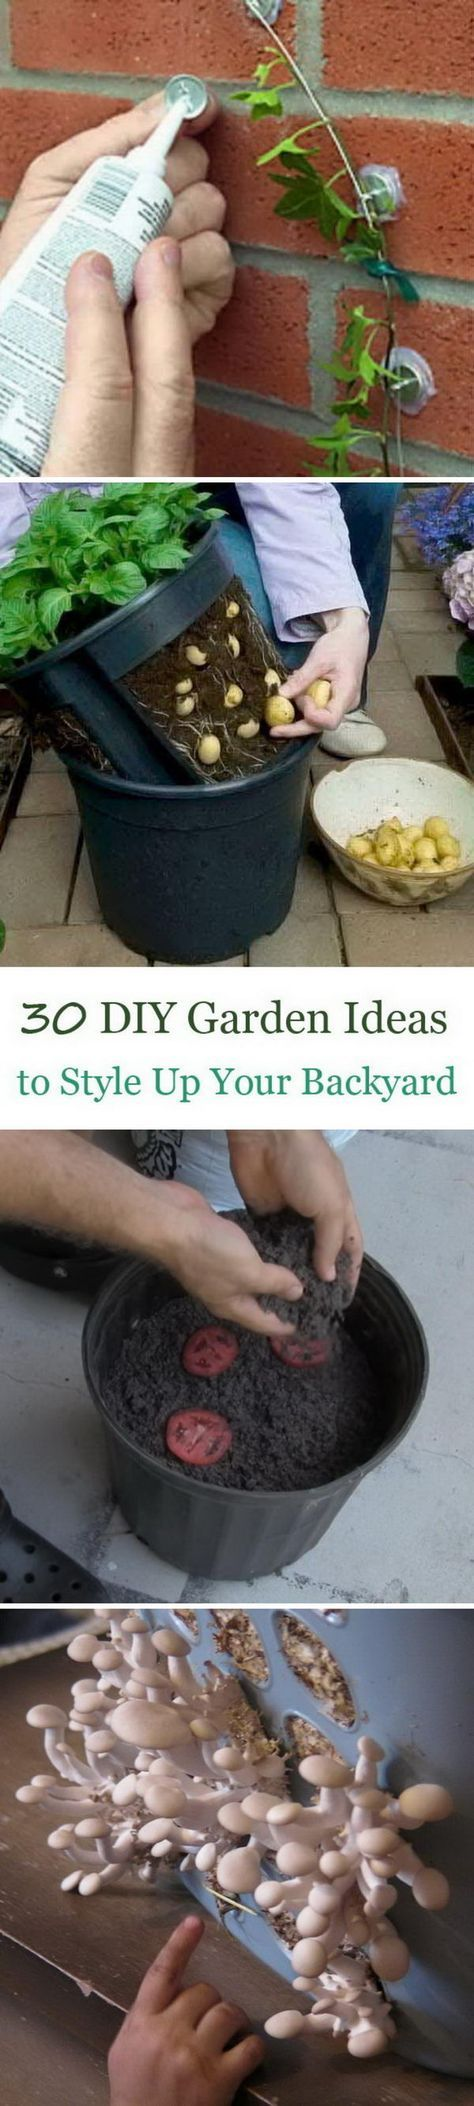 97 Best Diy Garden Images On Pinterest Ideas Vegetable Quiz Lockout Buzzer Doityourselfcom Community Forums 30 To Style Up Your Backyard The Next Level 2017